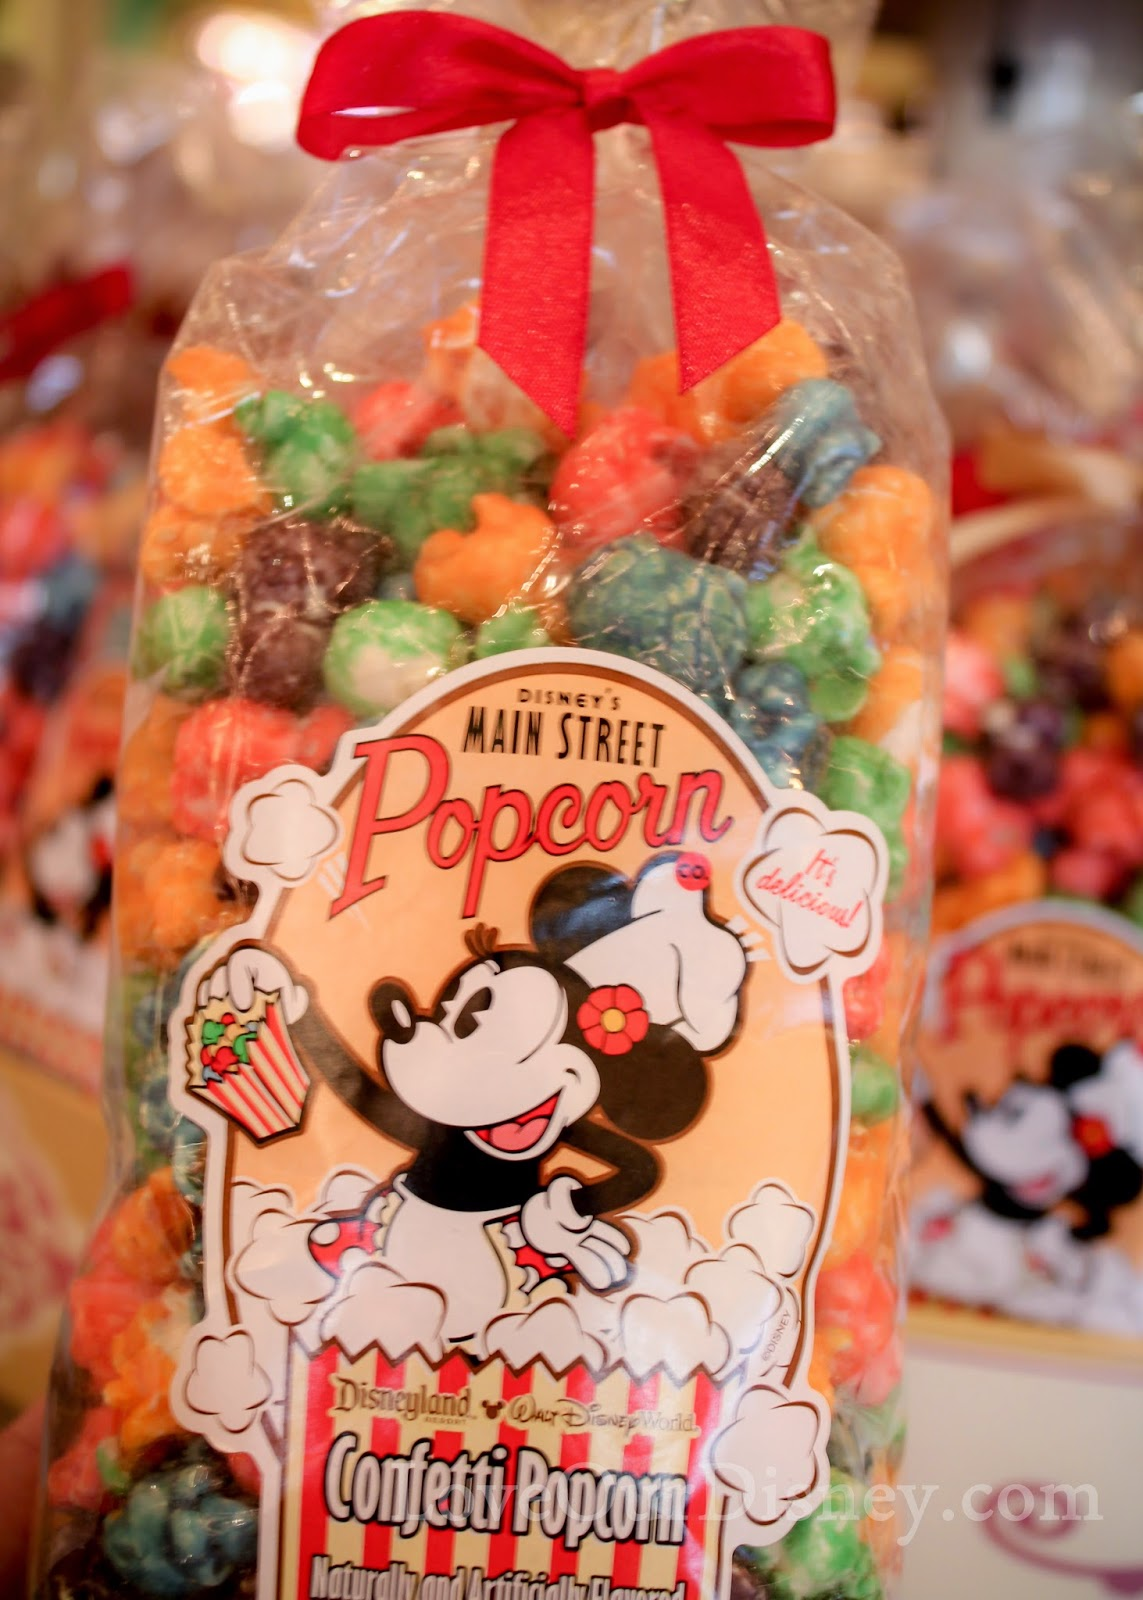 So many different types of popcorn at Disneyland's Candy Palace. LoveOurDisney.com